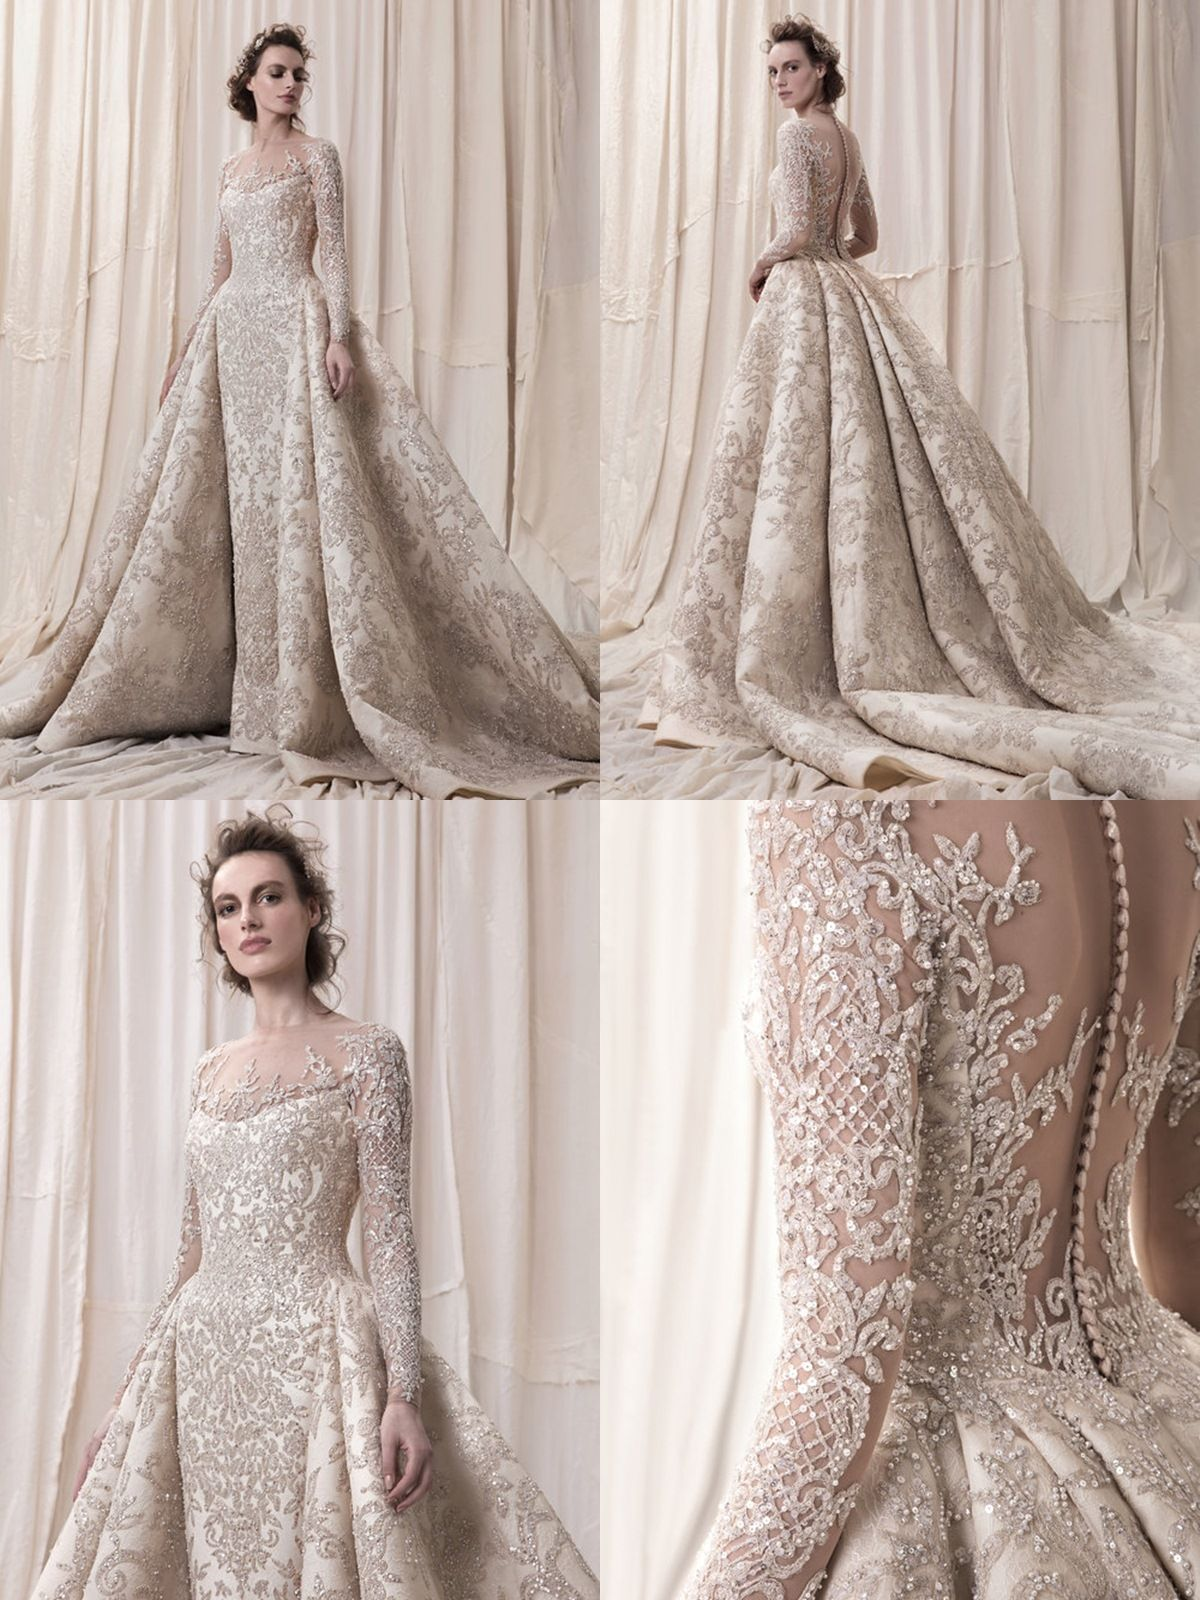 Krikor jabotien u wedding list wedding dresses pinterest